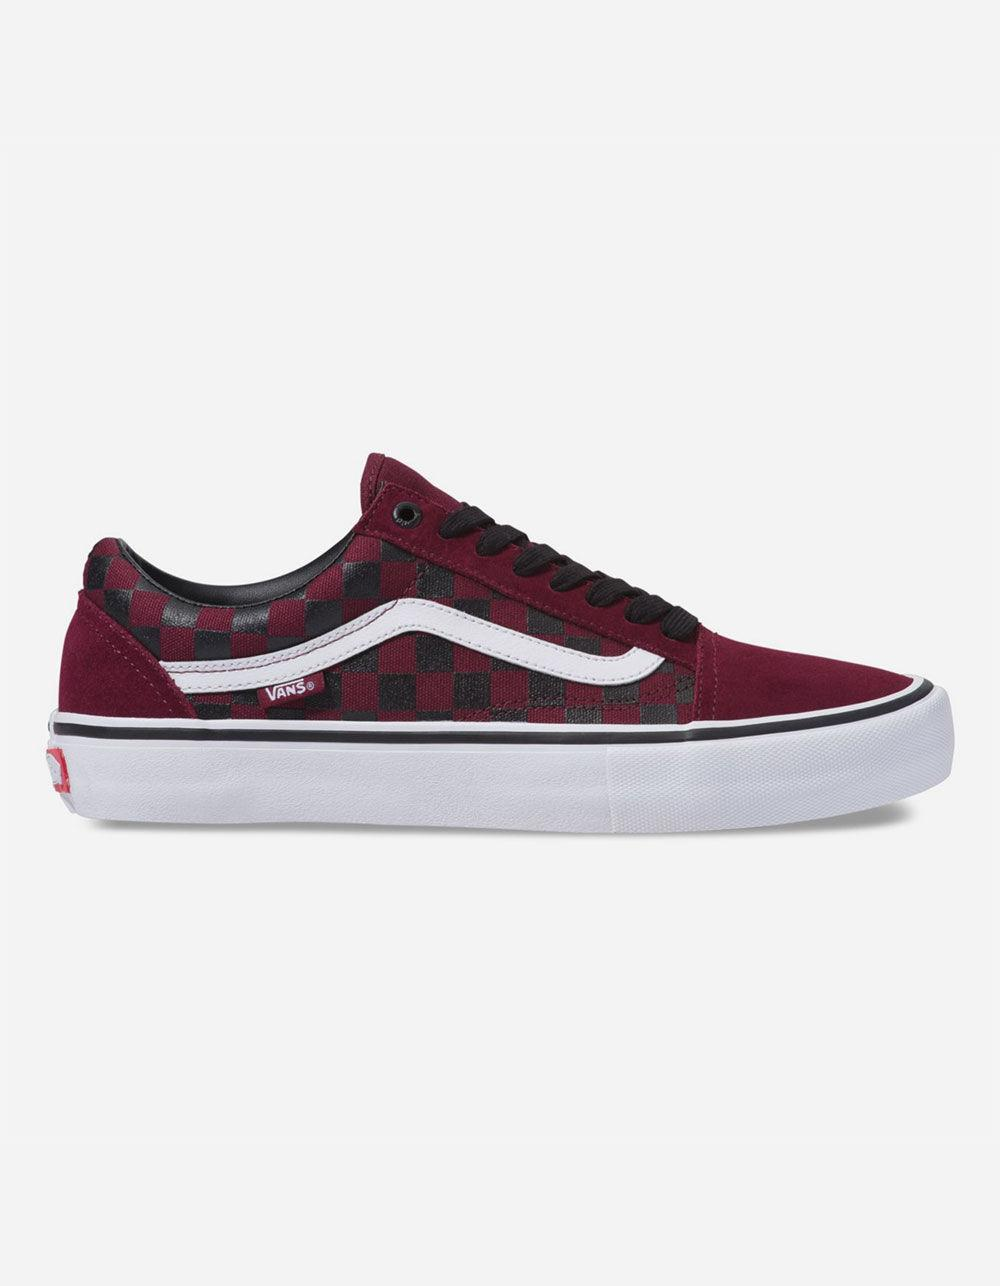 1acfb77ce00 Vans - Multicolor The Rubber Print Old Skool Pro Port Royal Shoes for Men -  Lyst. View fullscreen